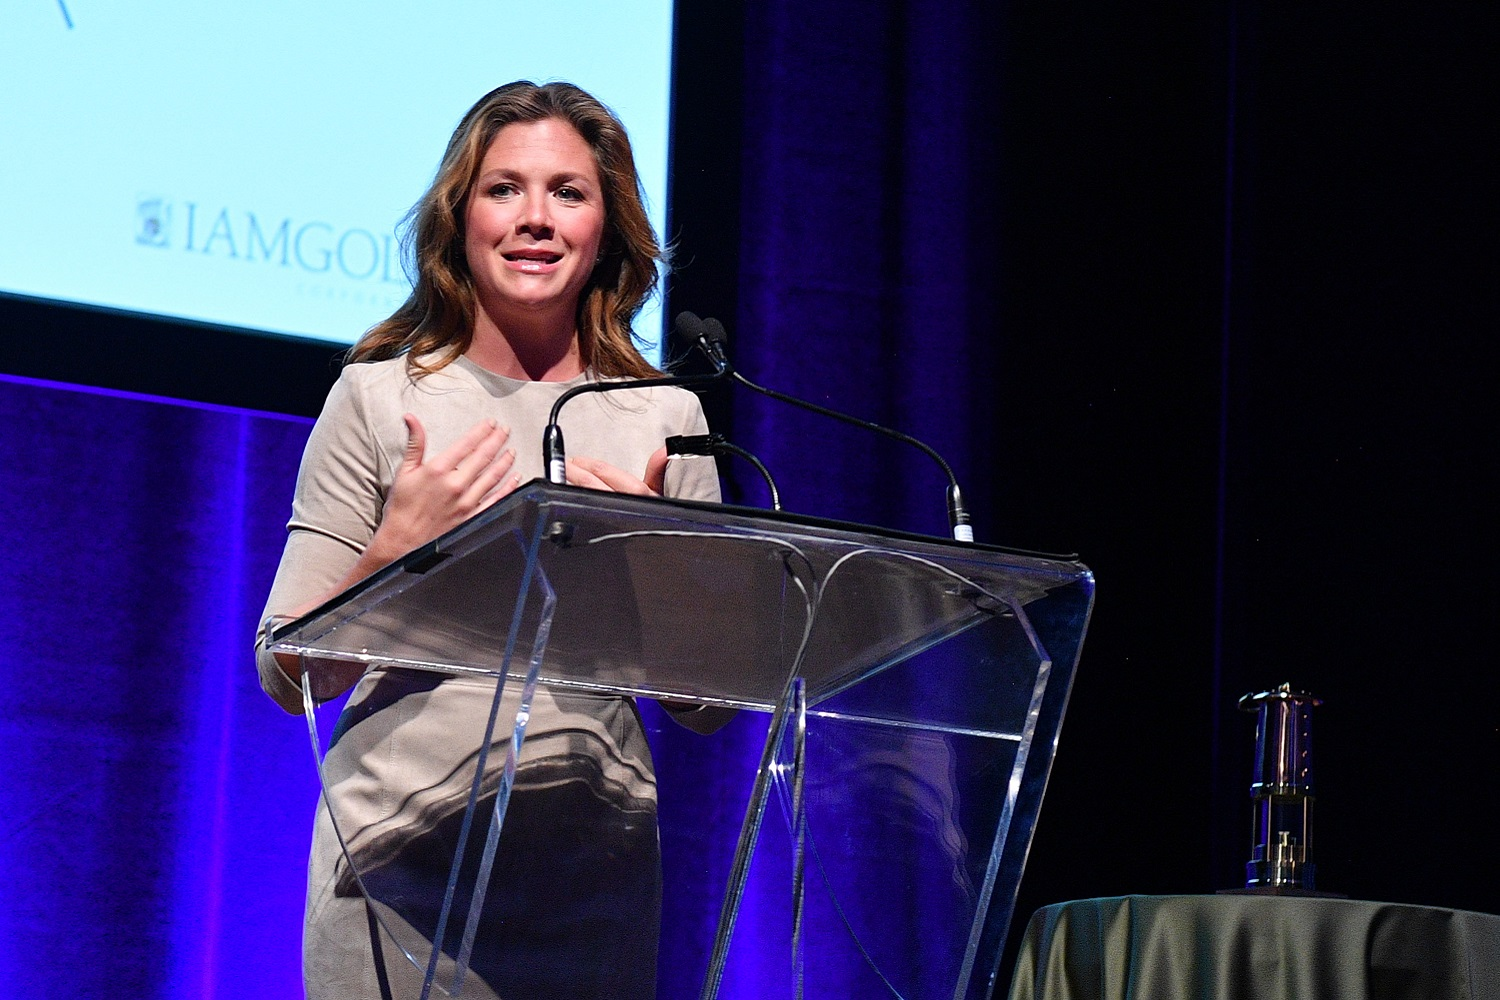 Miner's Lamp Award dinner raises $600,000 for mental health research